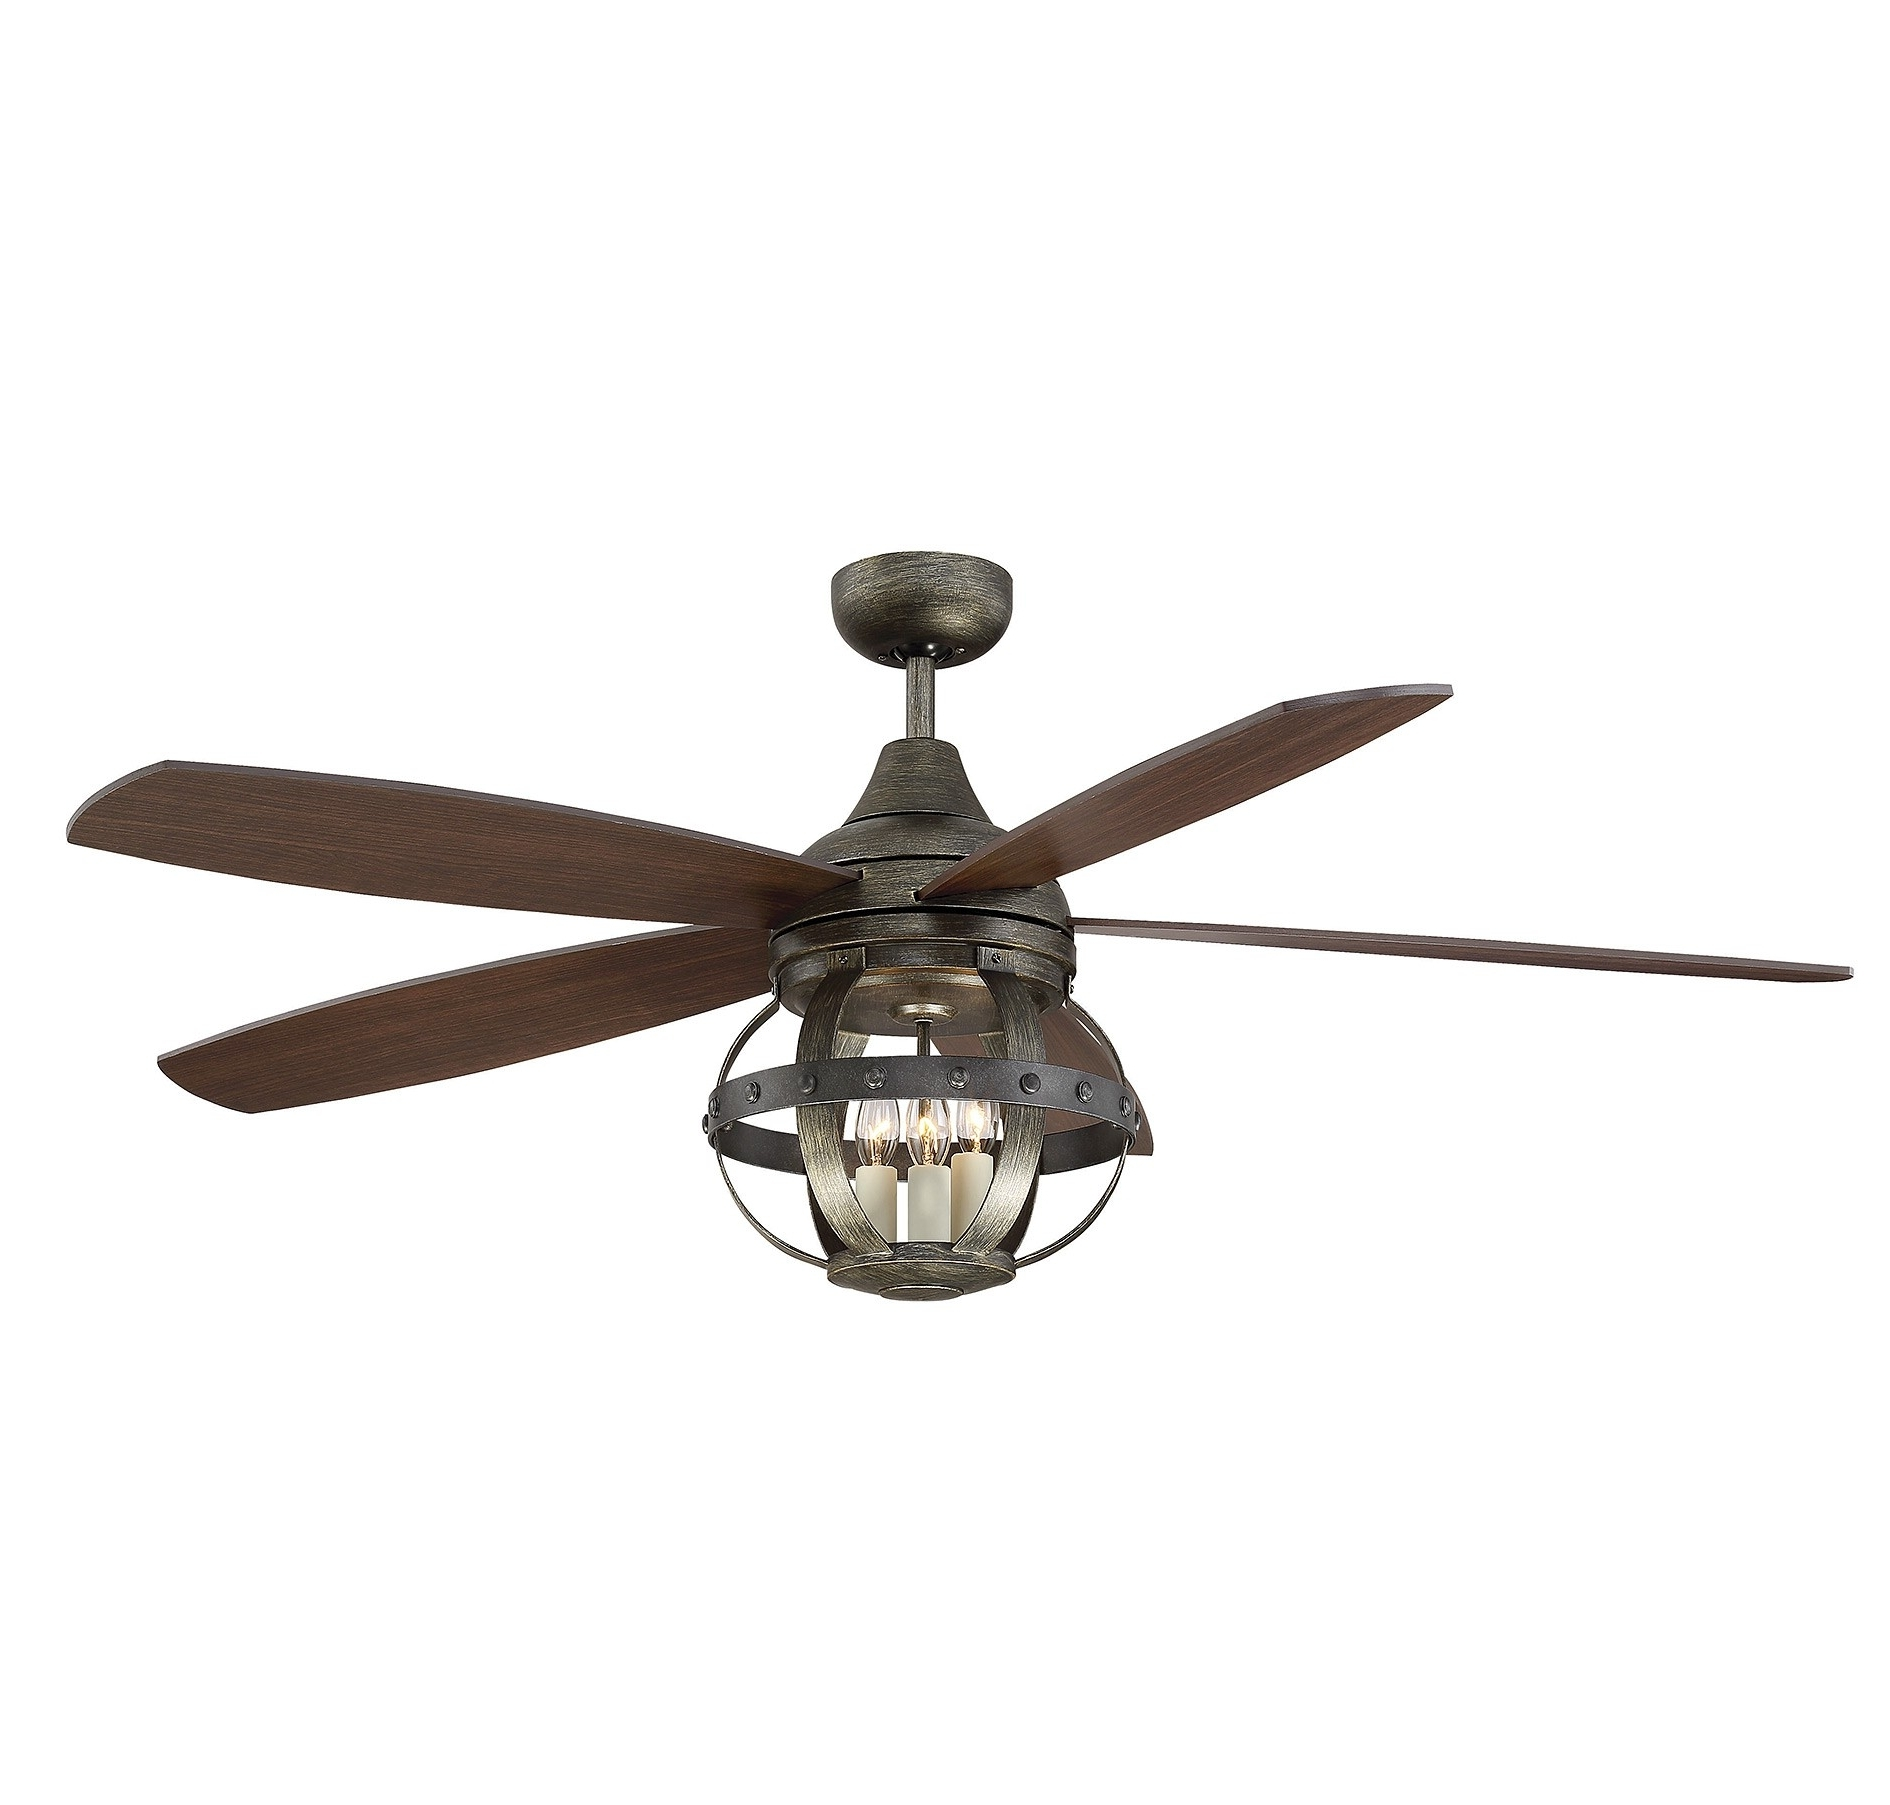 Ceiling Fanssavoy House Throughout 2019 24 Inch Outdoor Ceiling Fans With Light (View 15 of 20)